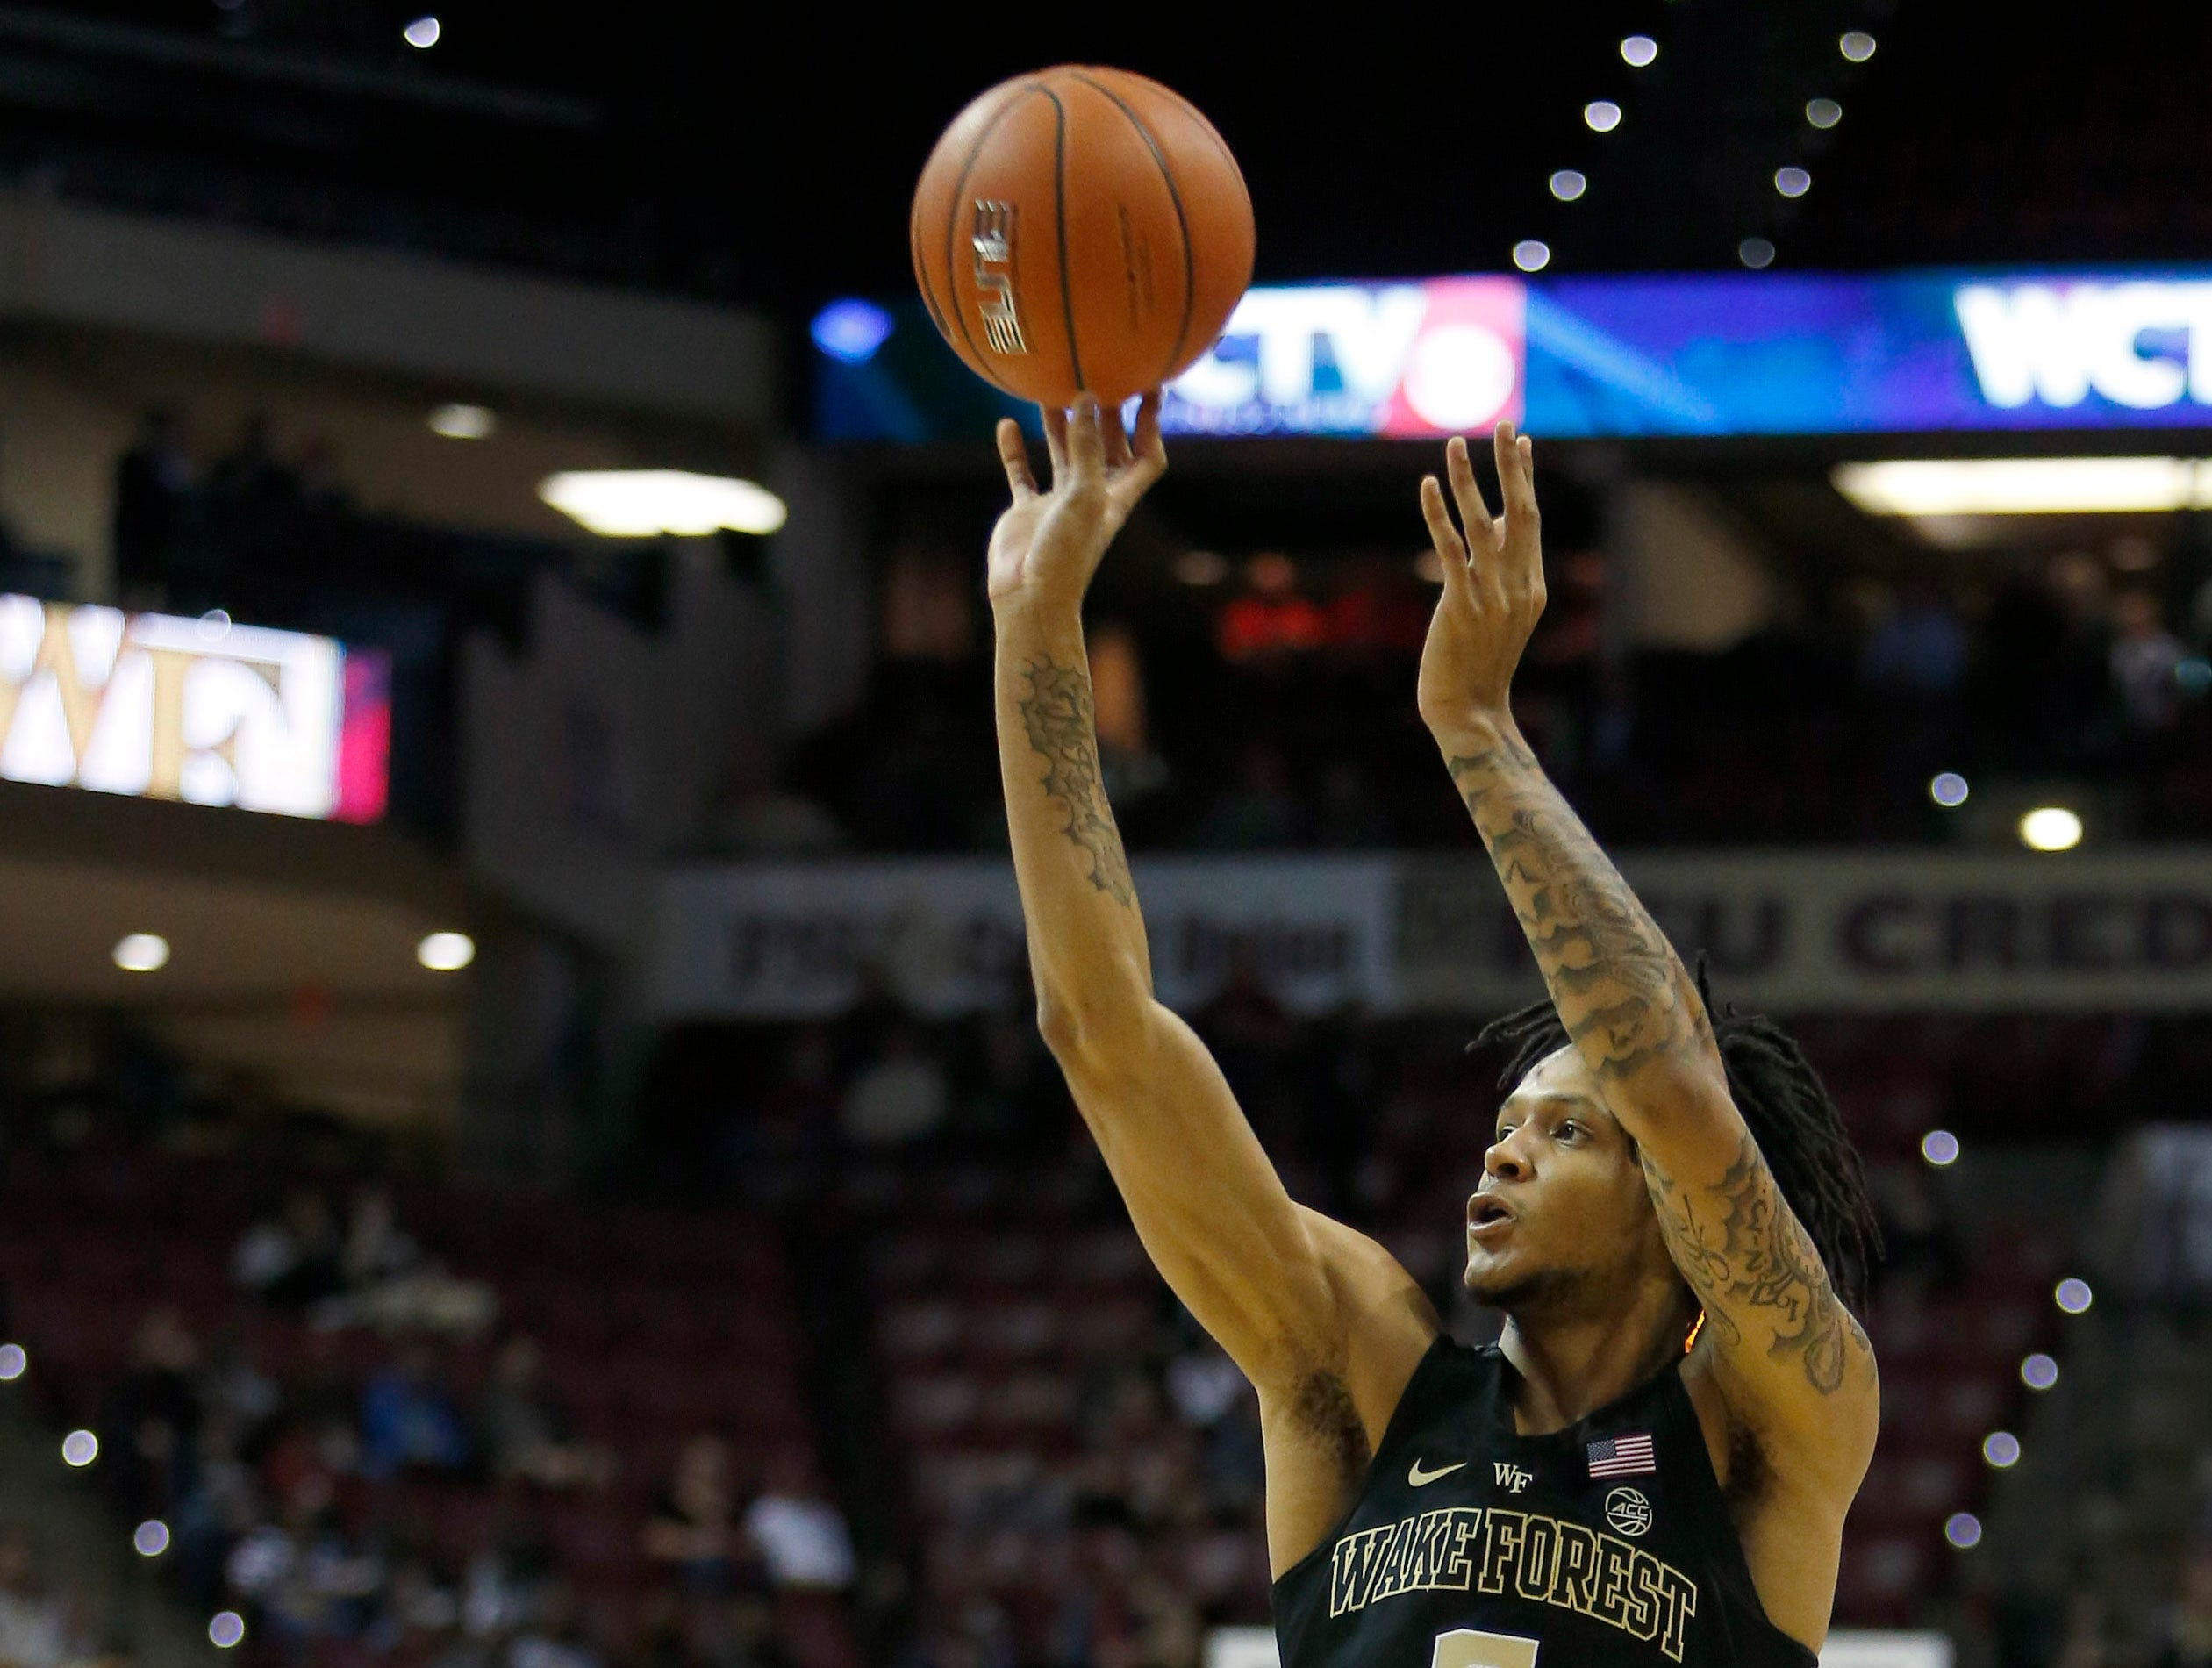 Feb 13, 2019; Tallahassee, FL, USA; Wake Forest Demon Deacons shoots the ball during the first half against the Florida State Seminoles at Donald L. Tucker Center. Mandatory Credit: Glenn Beil-USA TODAY Sports